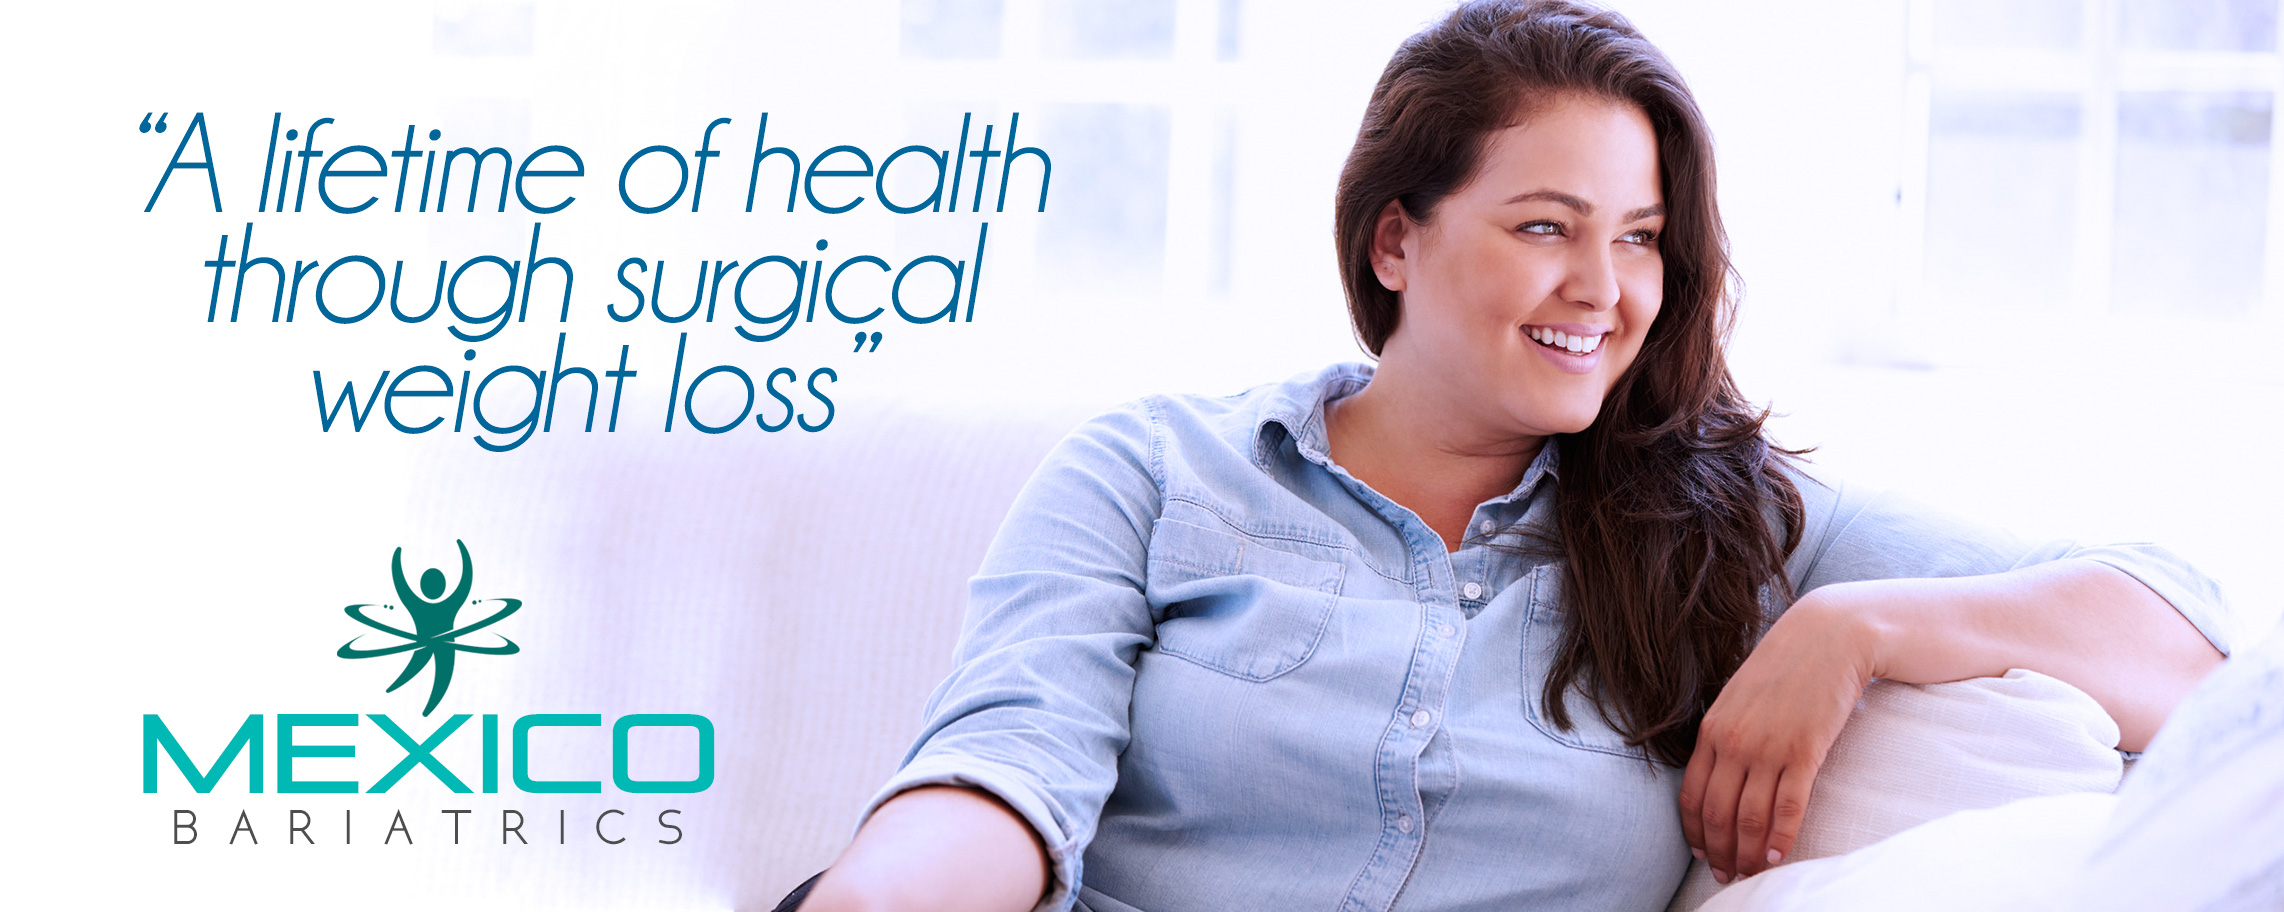 Mexico Bariatric Surgery Center for the surgical treatment of individuals suffering from morbid obesity.